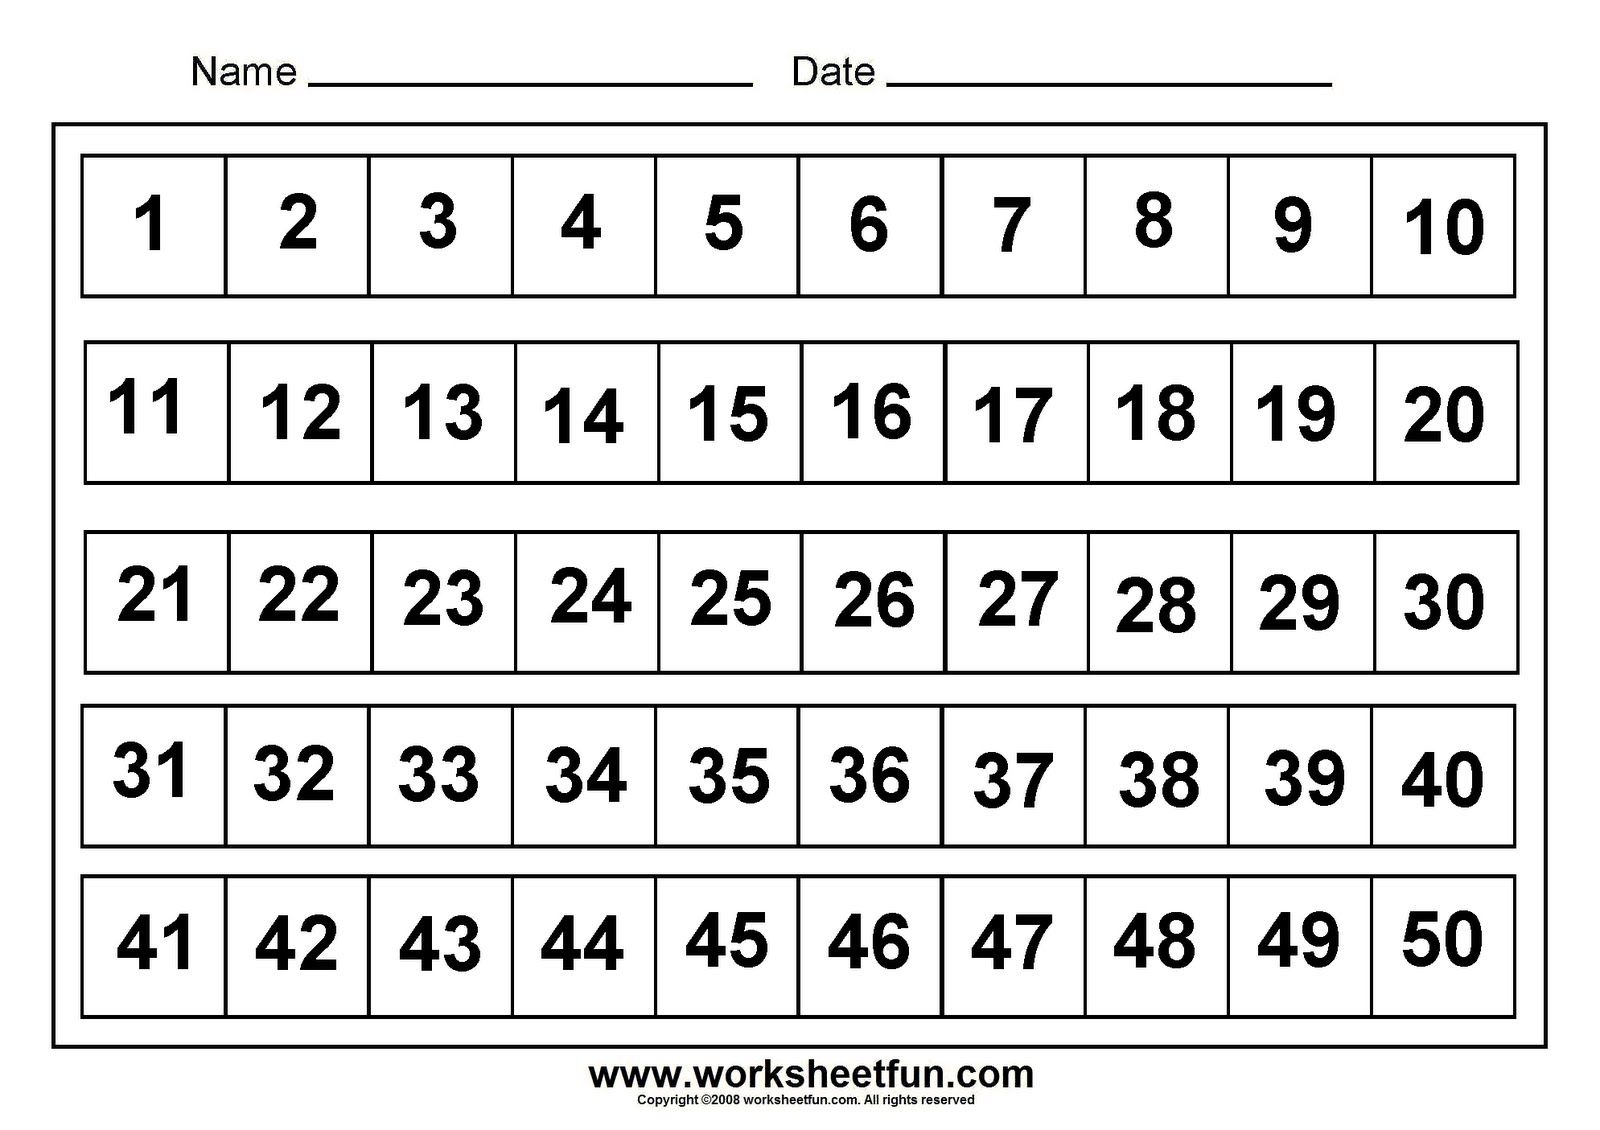 numbers assessments | Number Chart - (1-50) - Numbers 1-50 | A1 ...